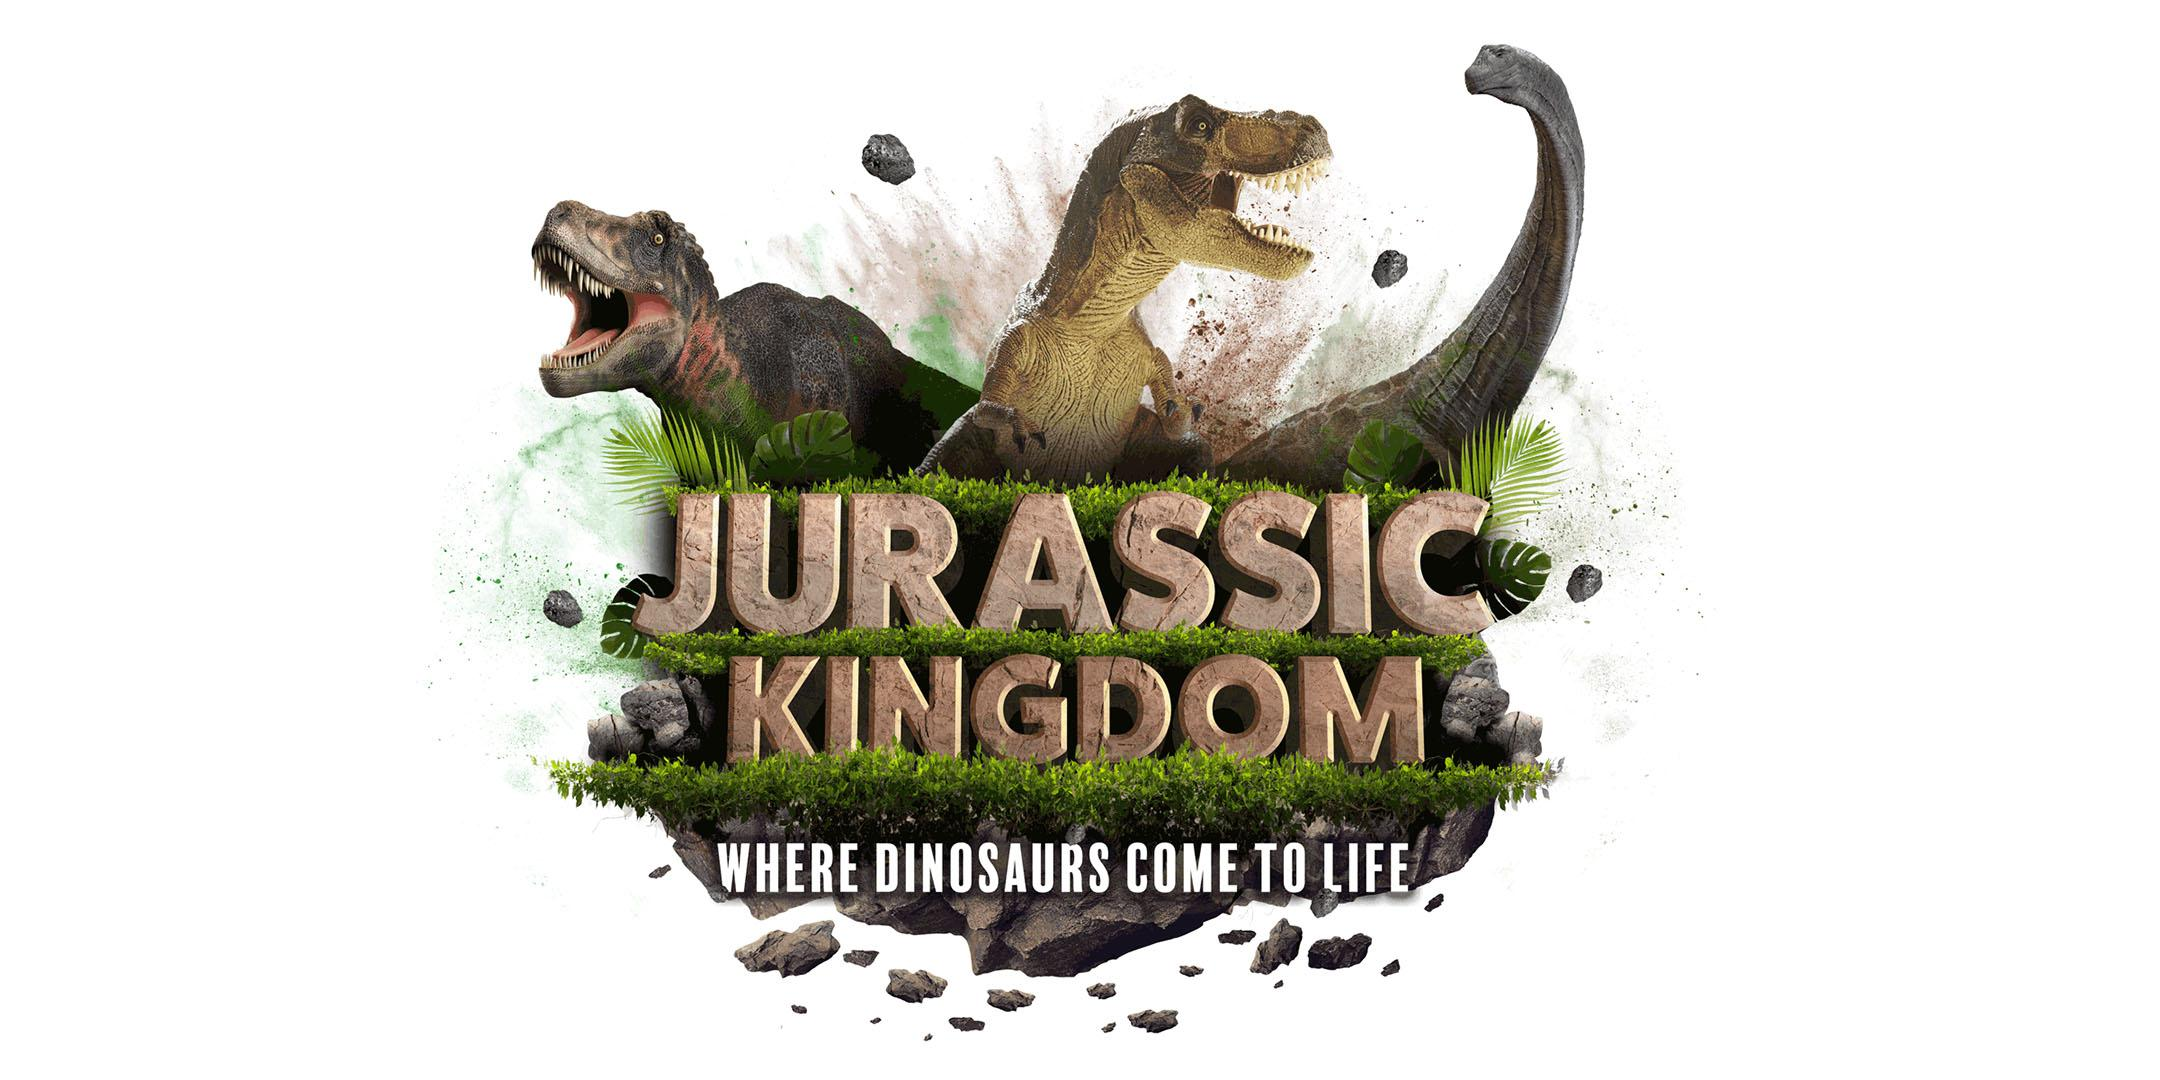 Jurassic Kingdom Tour Glasgow